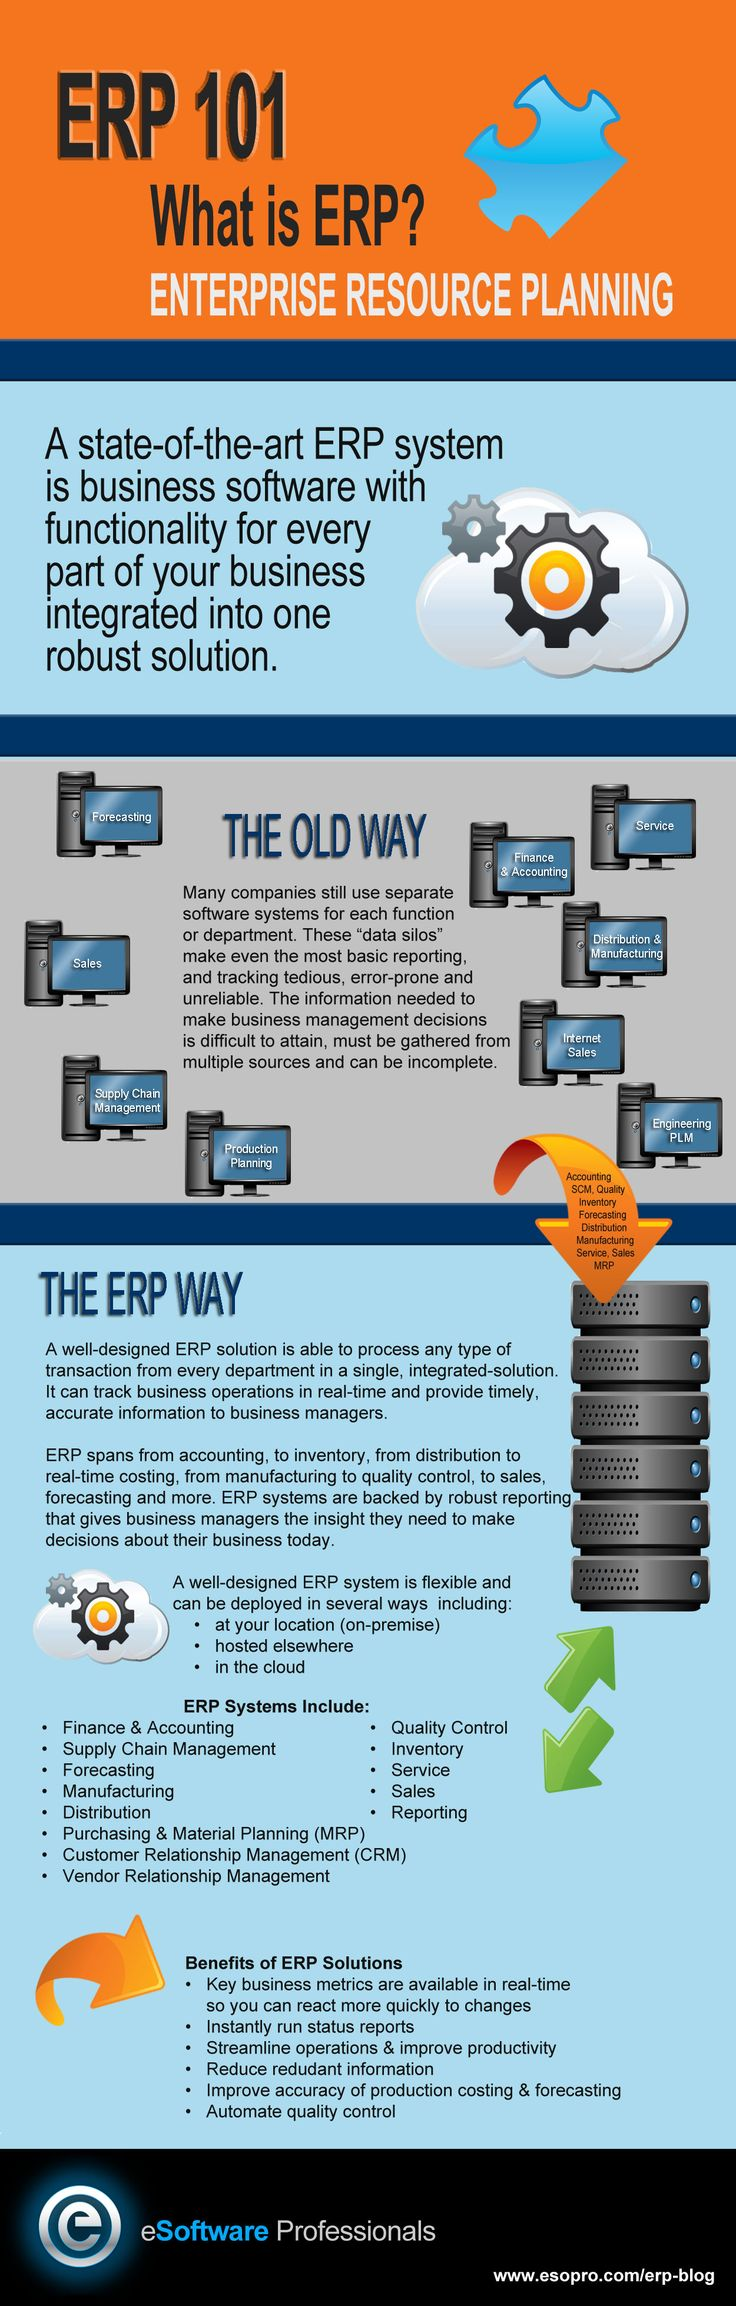 enterprise resource planning Erp, or enterprise resource planning, is a modular software system designed to integrate the main functional areas of an organization's business processes into a unified system.